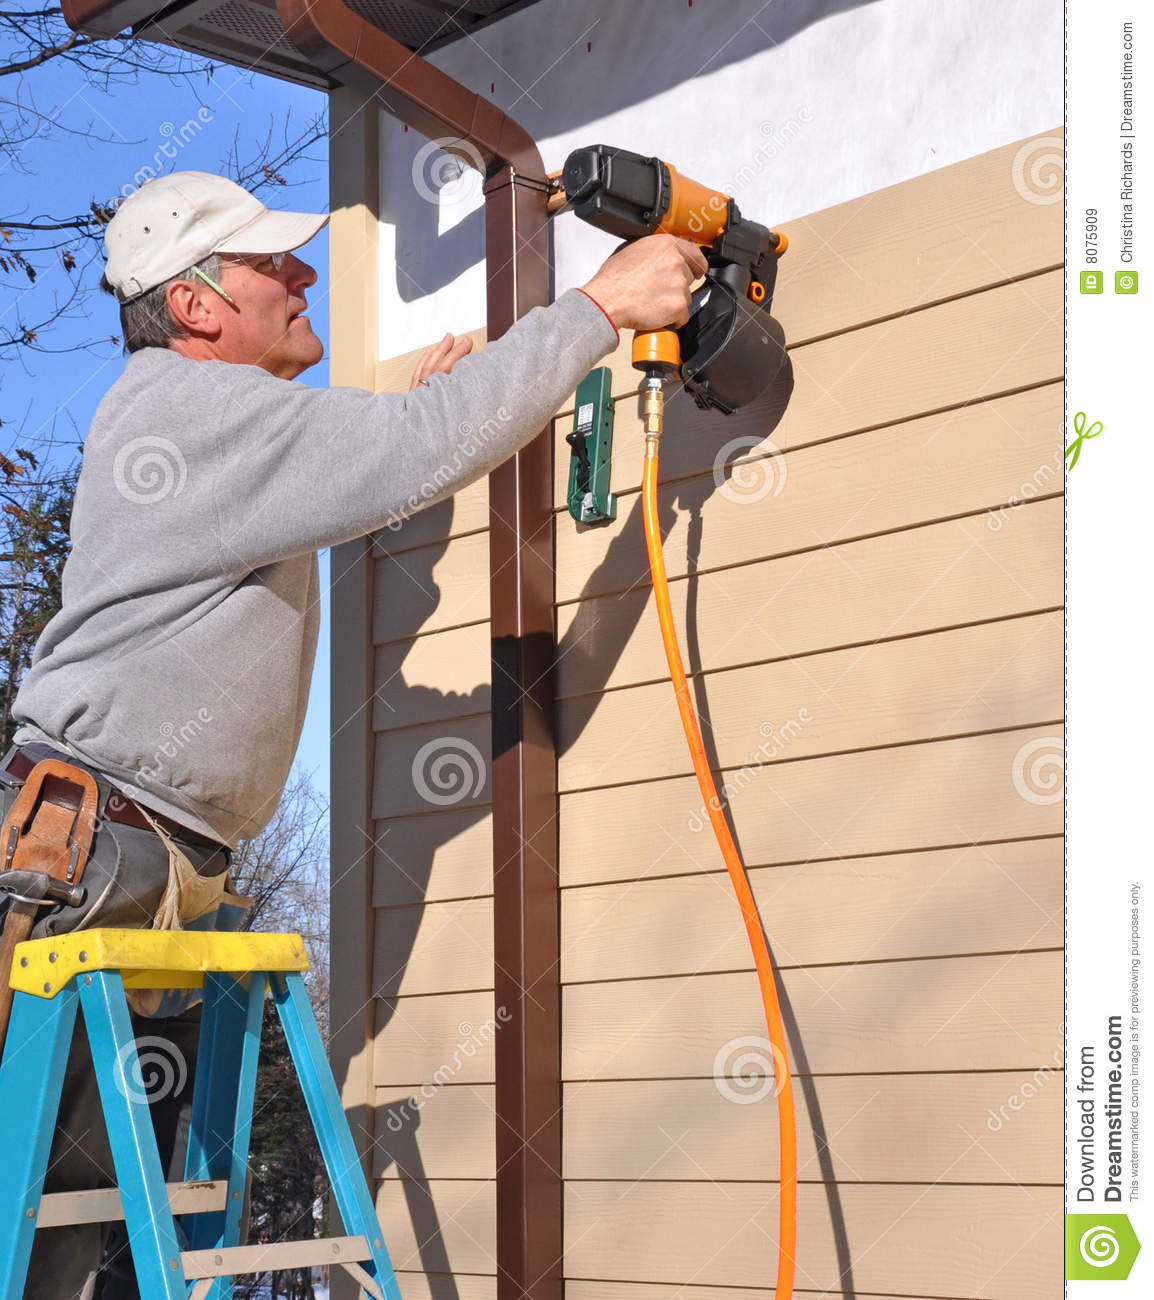 Man Installing Siding With Nail Gun Royalty Free Stock